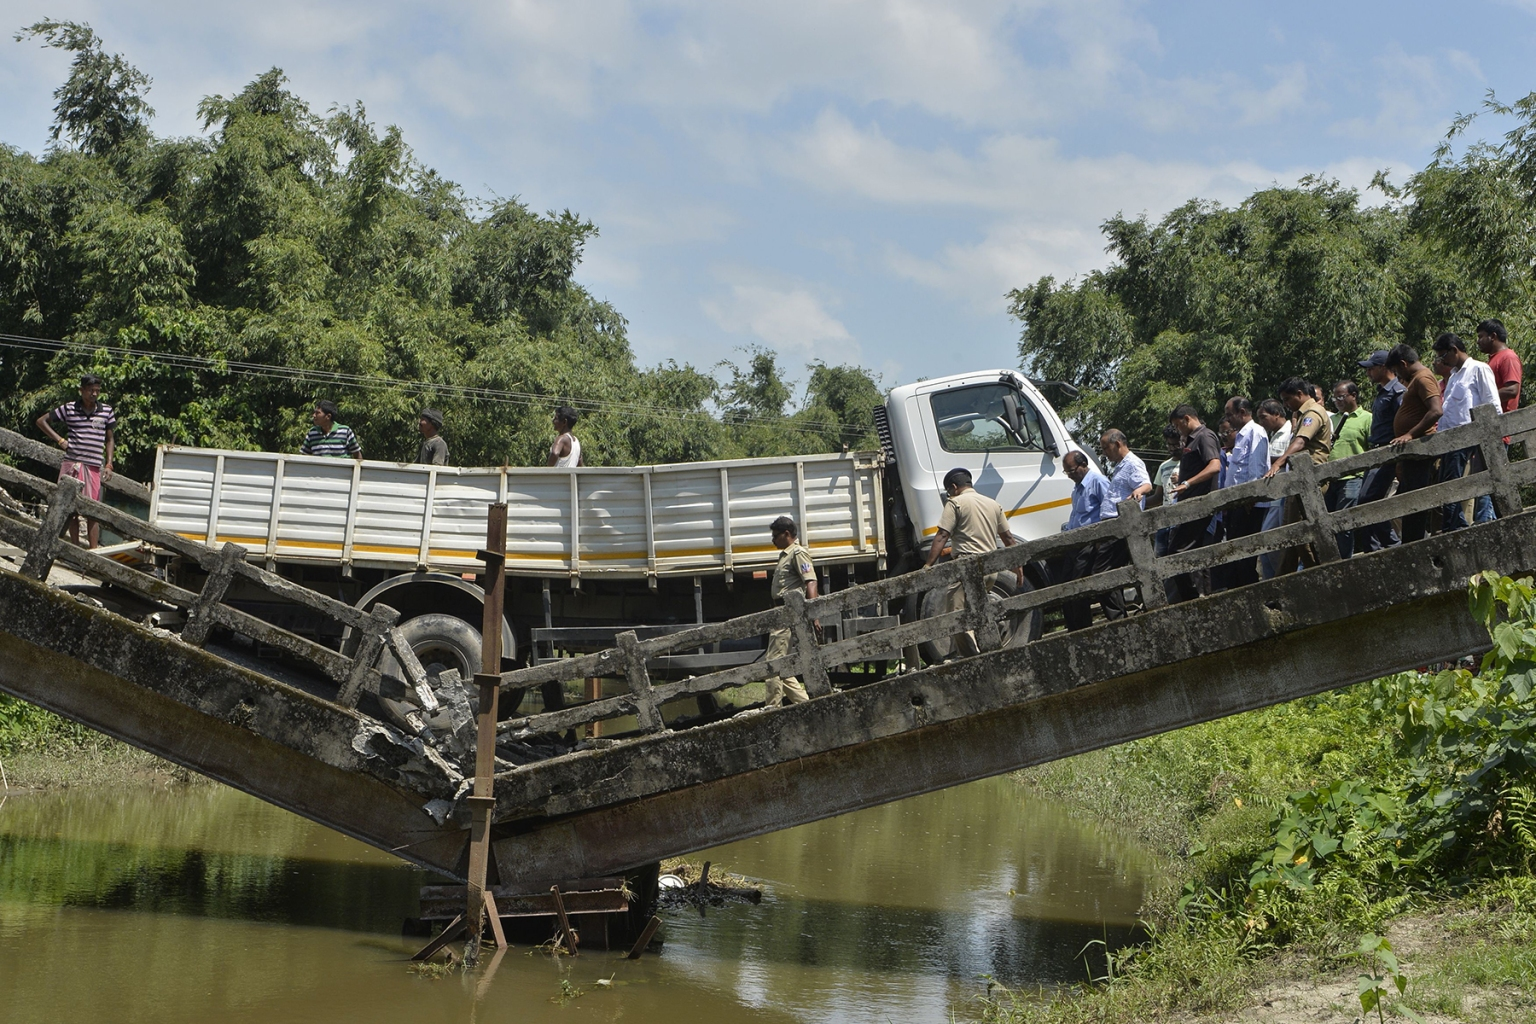 Rescue workers and villagers gather near a collapsed bridge in Phasidewa village near the India-Bangladesh border in the Indian state of West Bengal on Sept. 7. No casualties were reported in the collapse. DIPTENDU DUTTA/AFP/Getty Images